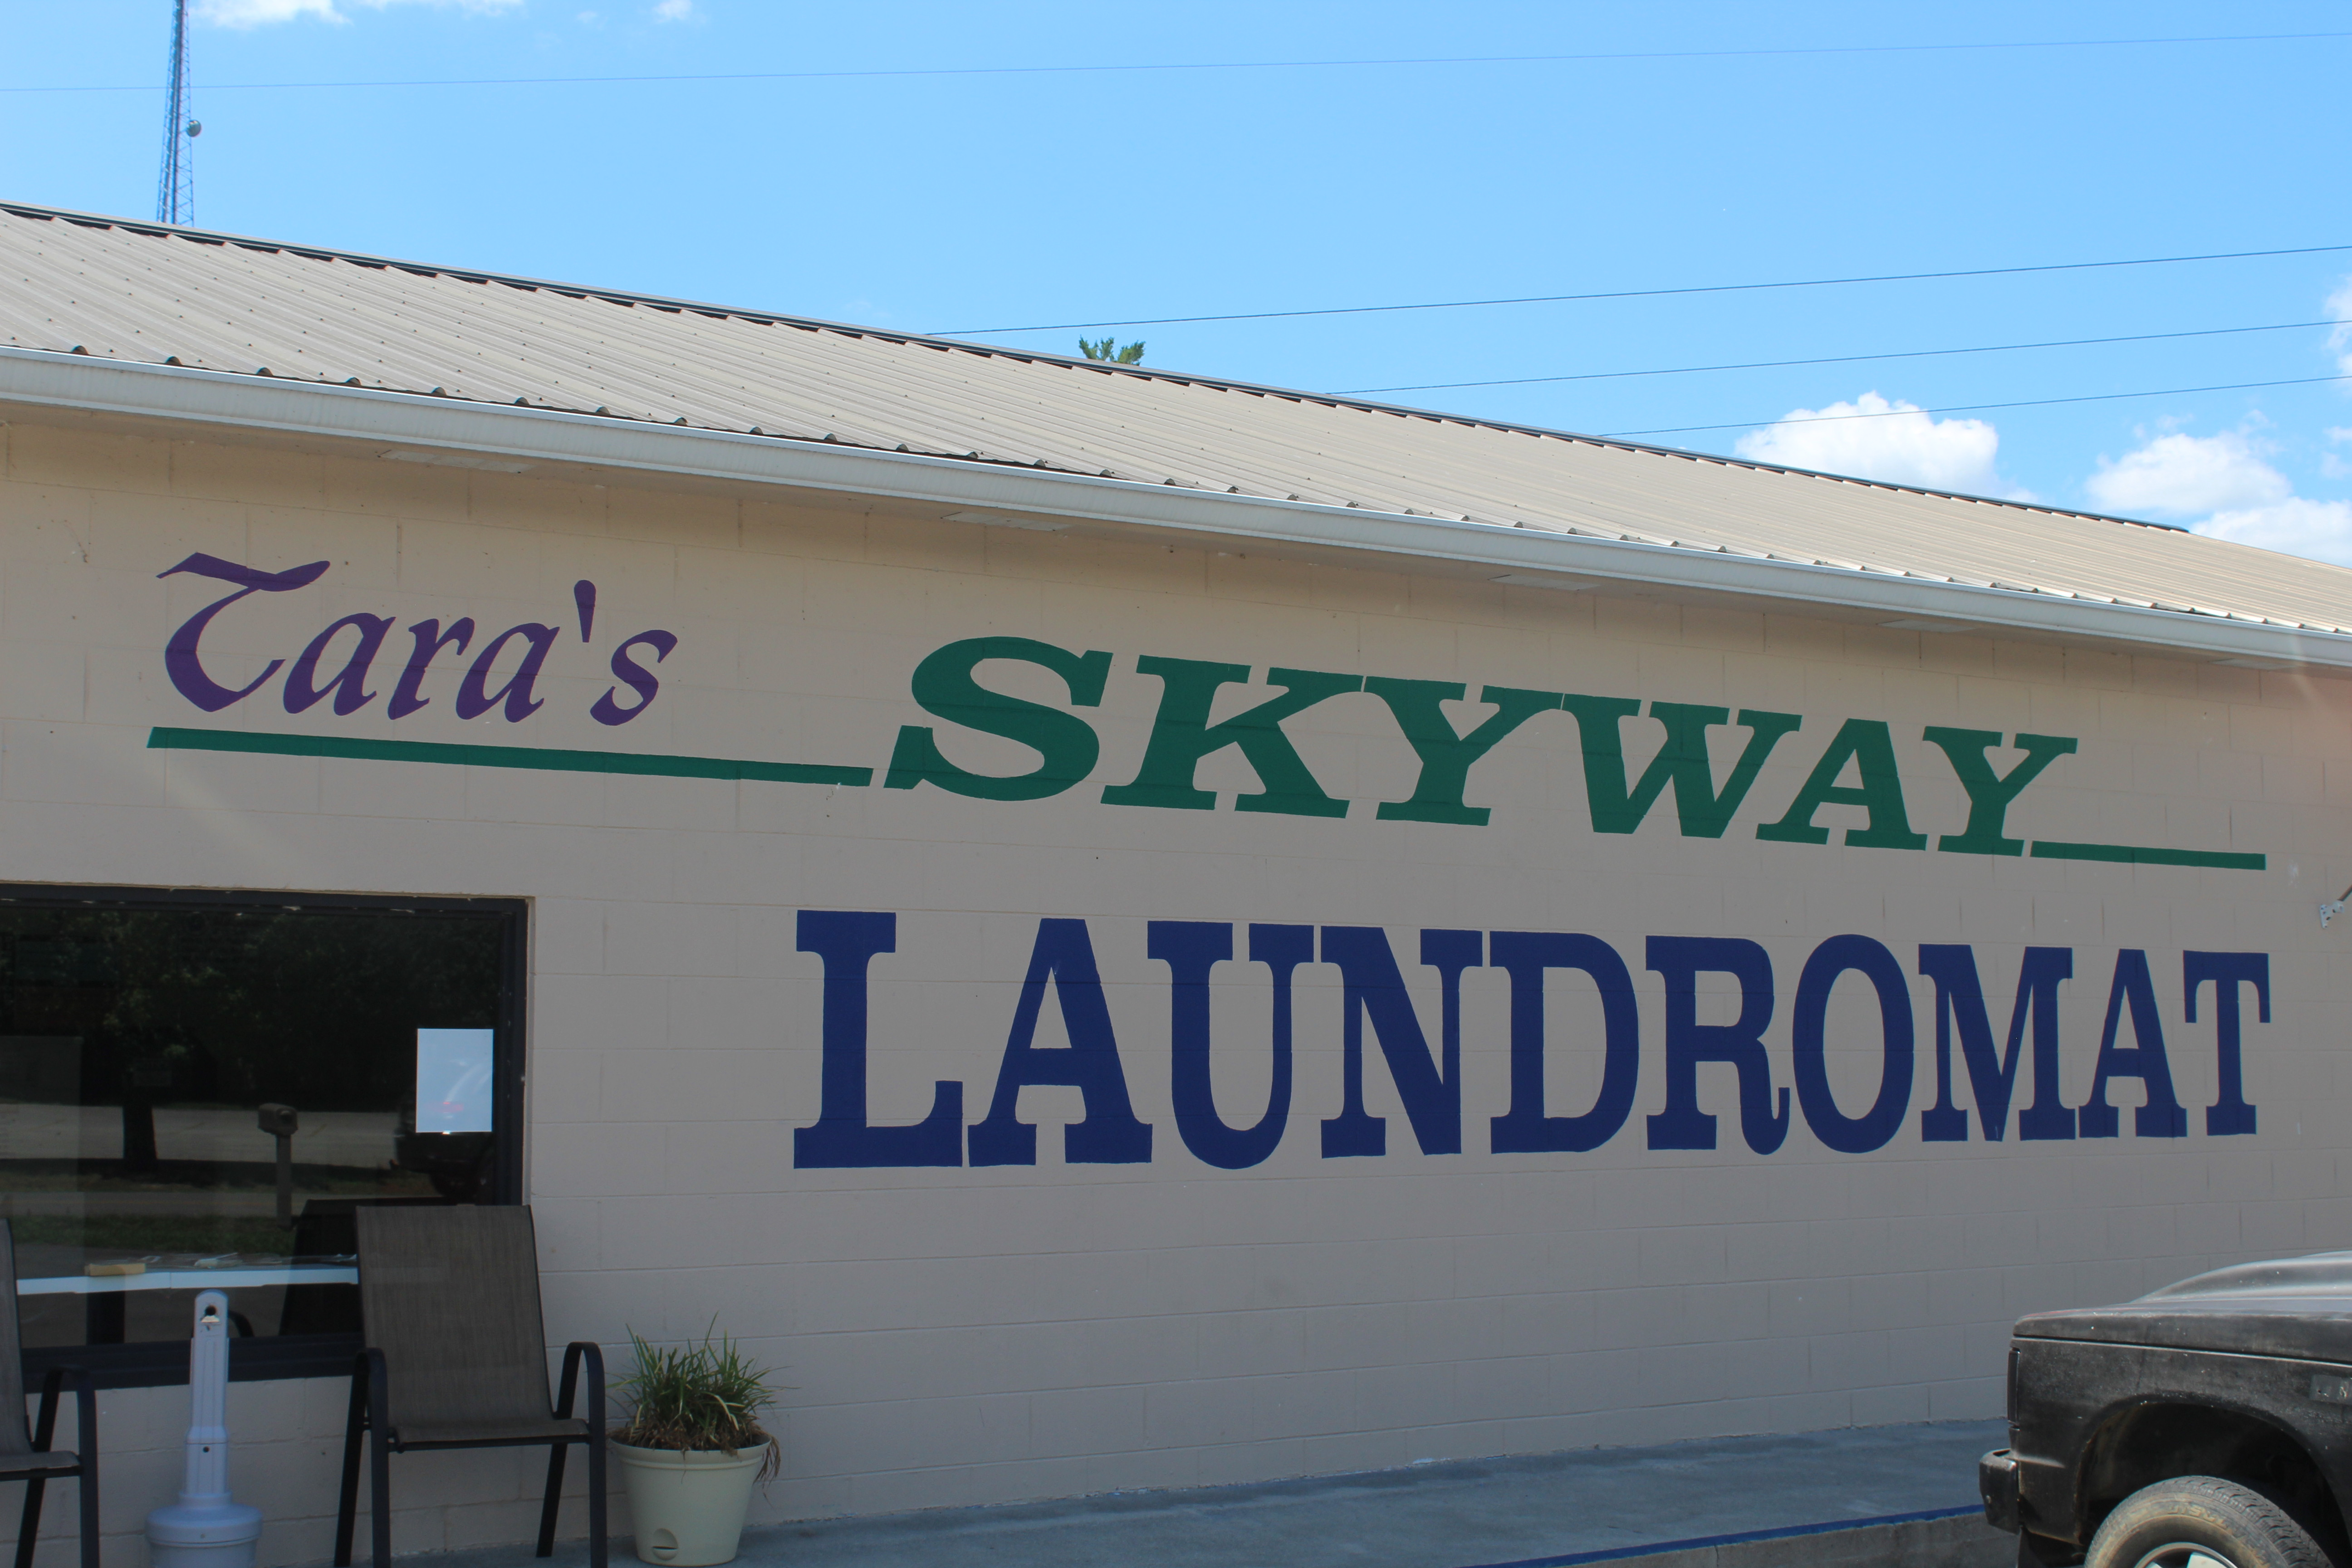 Tara's Skyway Laundormat